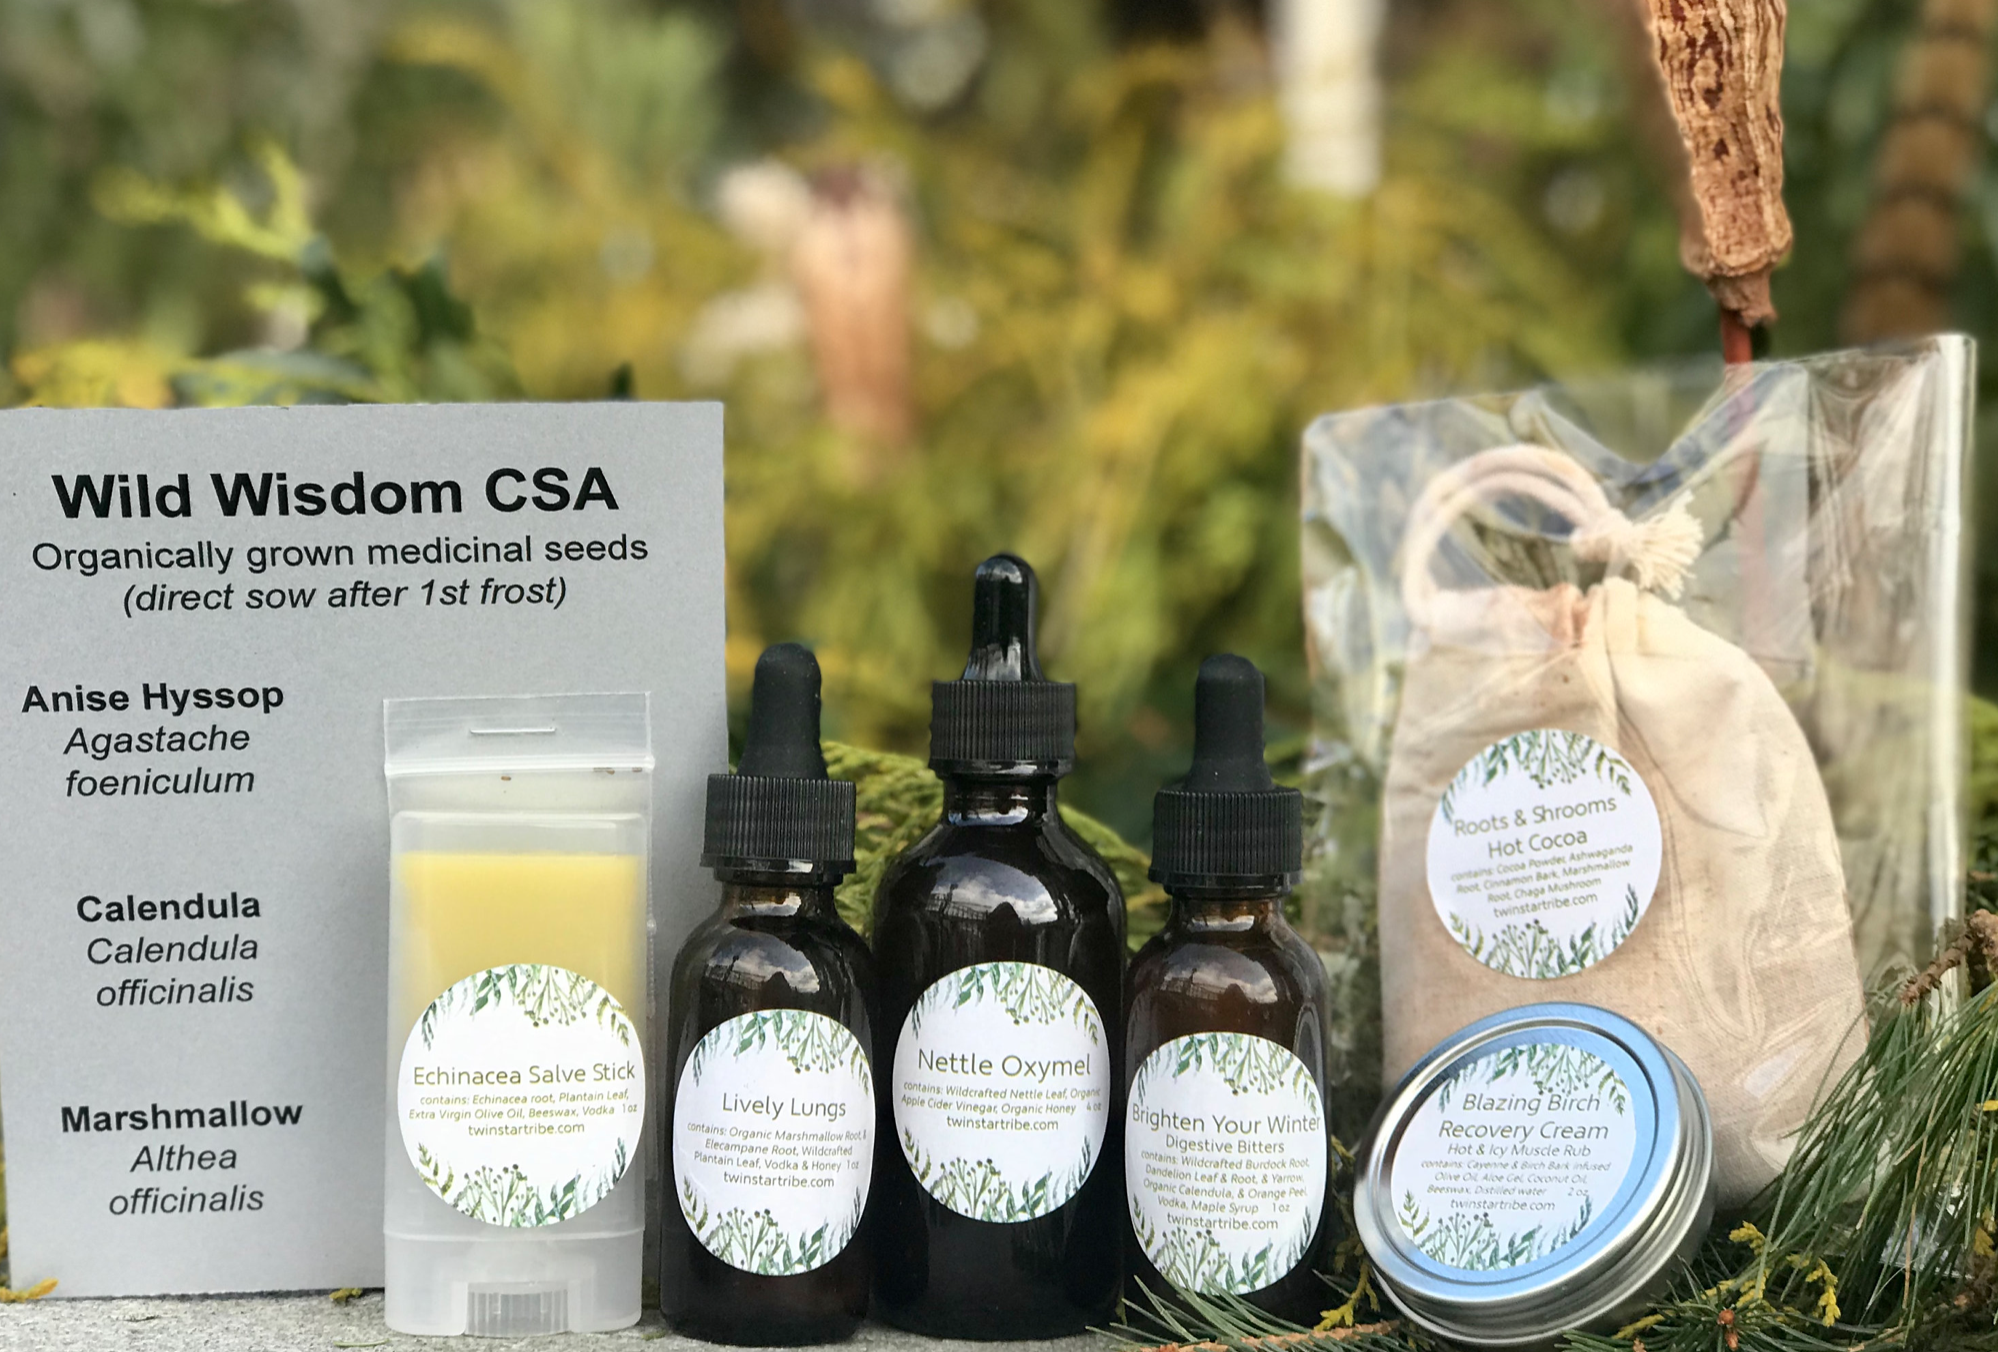 WINTER BOX: - Blazing Birch, Recovery Cream, Nettle Oxymel, Roots & Shrooms Hot Cocoa, Brighten Your Winter Bitters, Echinacea Salve Stick, Lively Lungs Tincture and Medicinal Seed Packets.All of this comes with a beautifully written newsletter explain the traditional uses of these herbs and a little bit about the products!